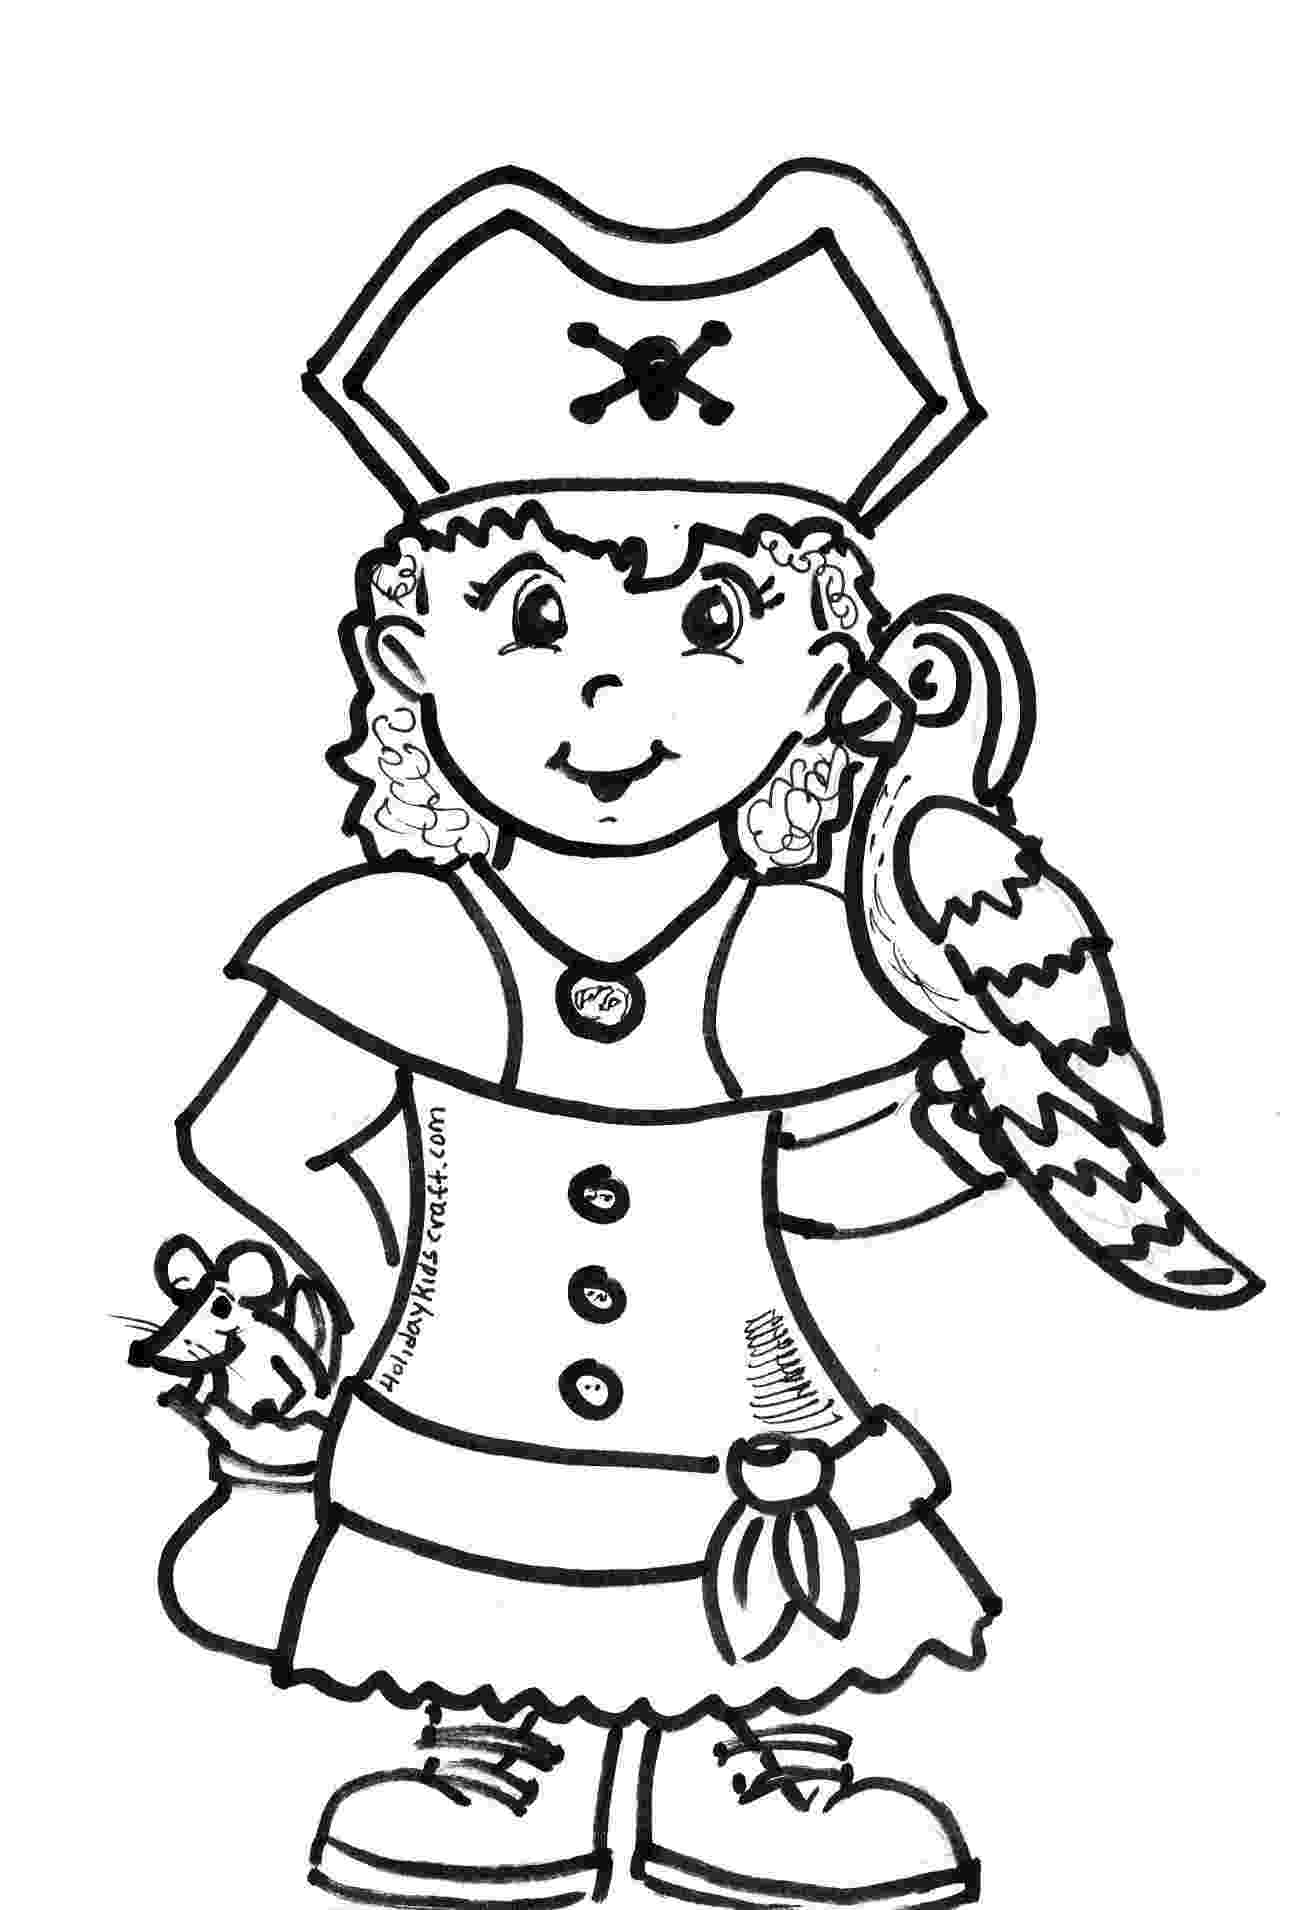 pirate coloring pages for kids printable free printable pirate coloring pages for kids printable pages coloring pirate for kids